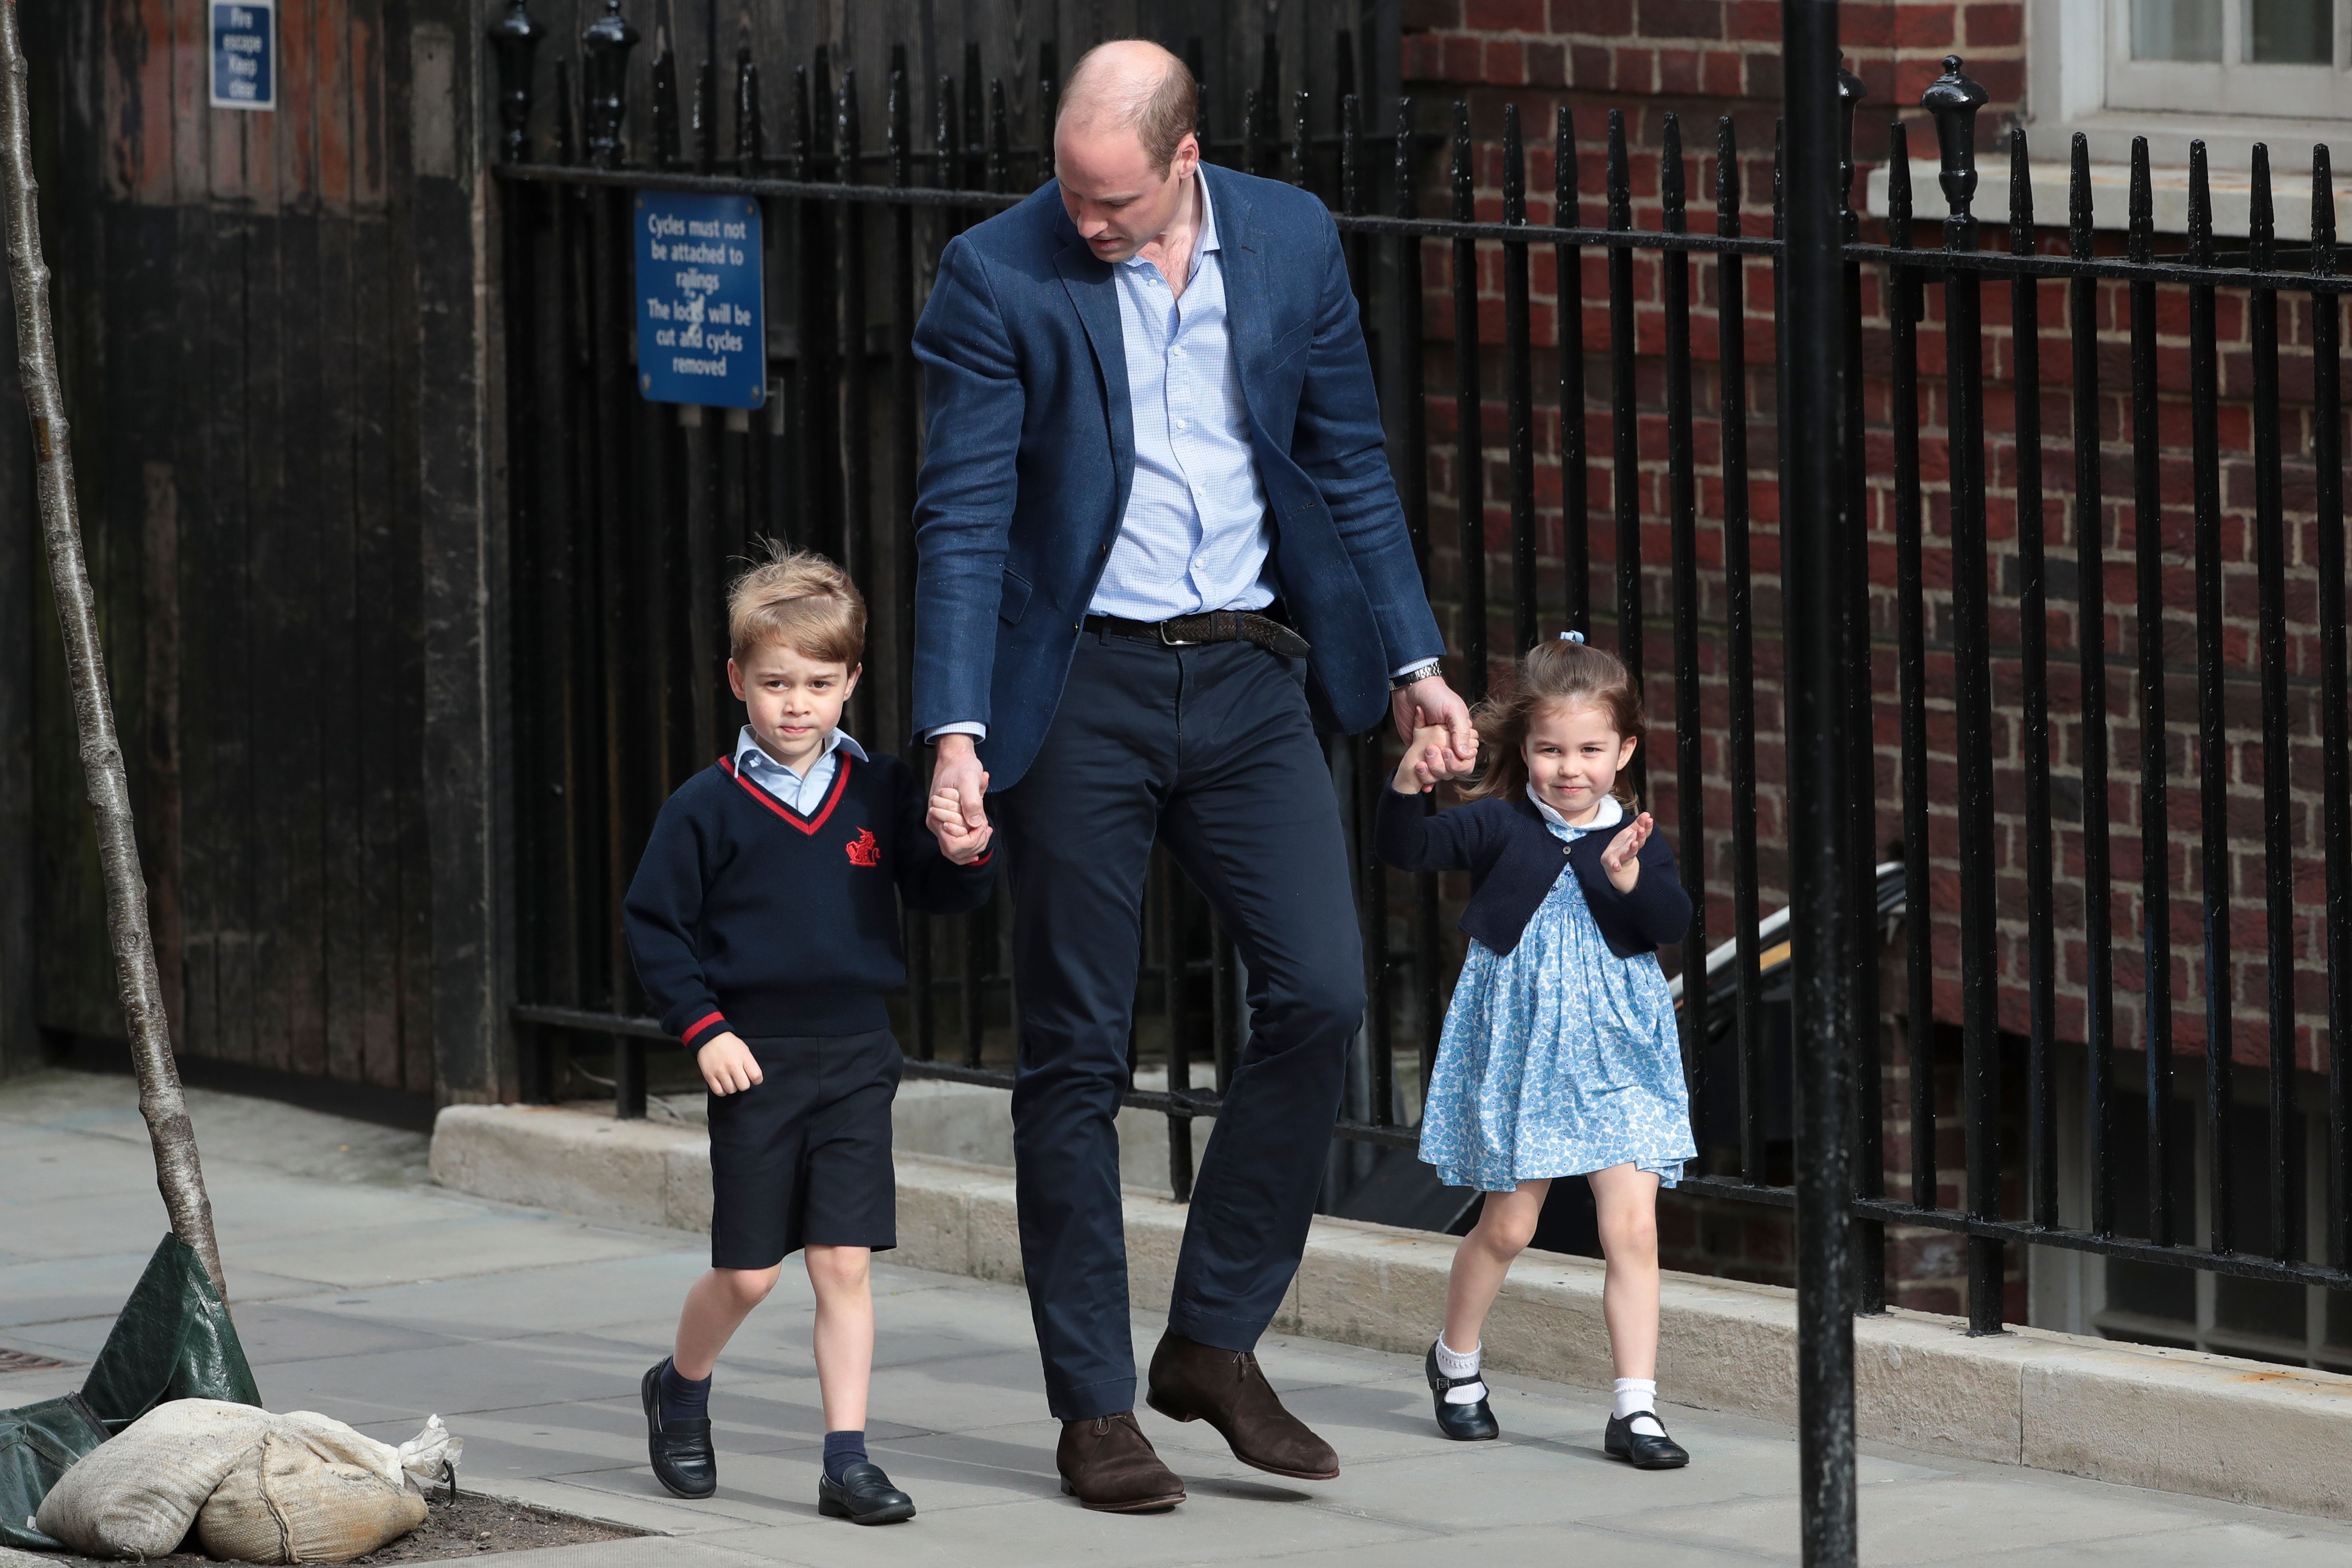 The Internet Is Seriously Divided on What Prince William Is Saying to Princess Charlotte in This Video